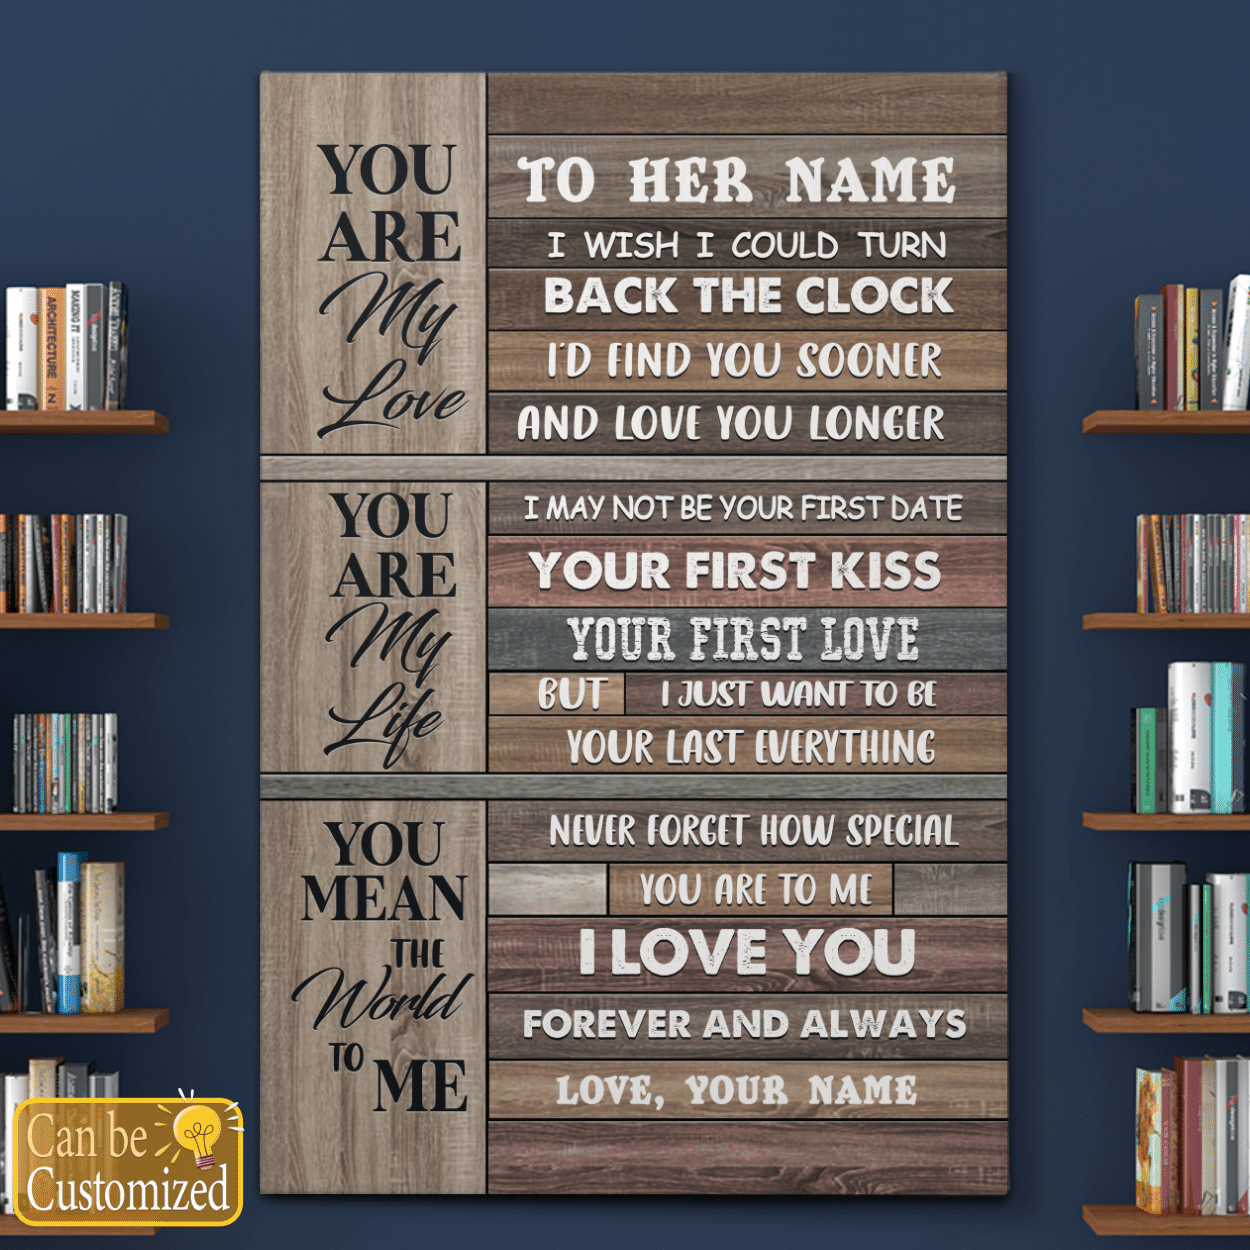 Youre my love youre my life you mean the world to me custom name poster and canvas 4